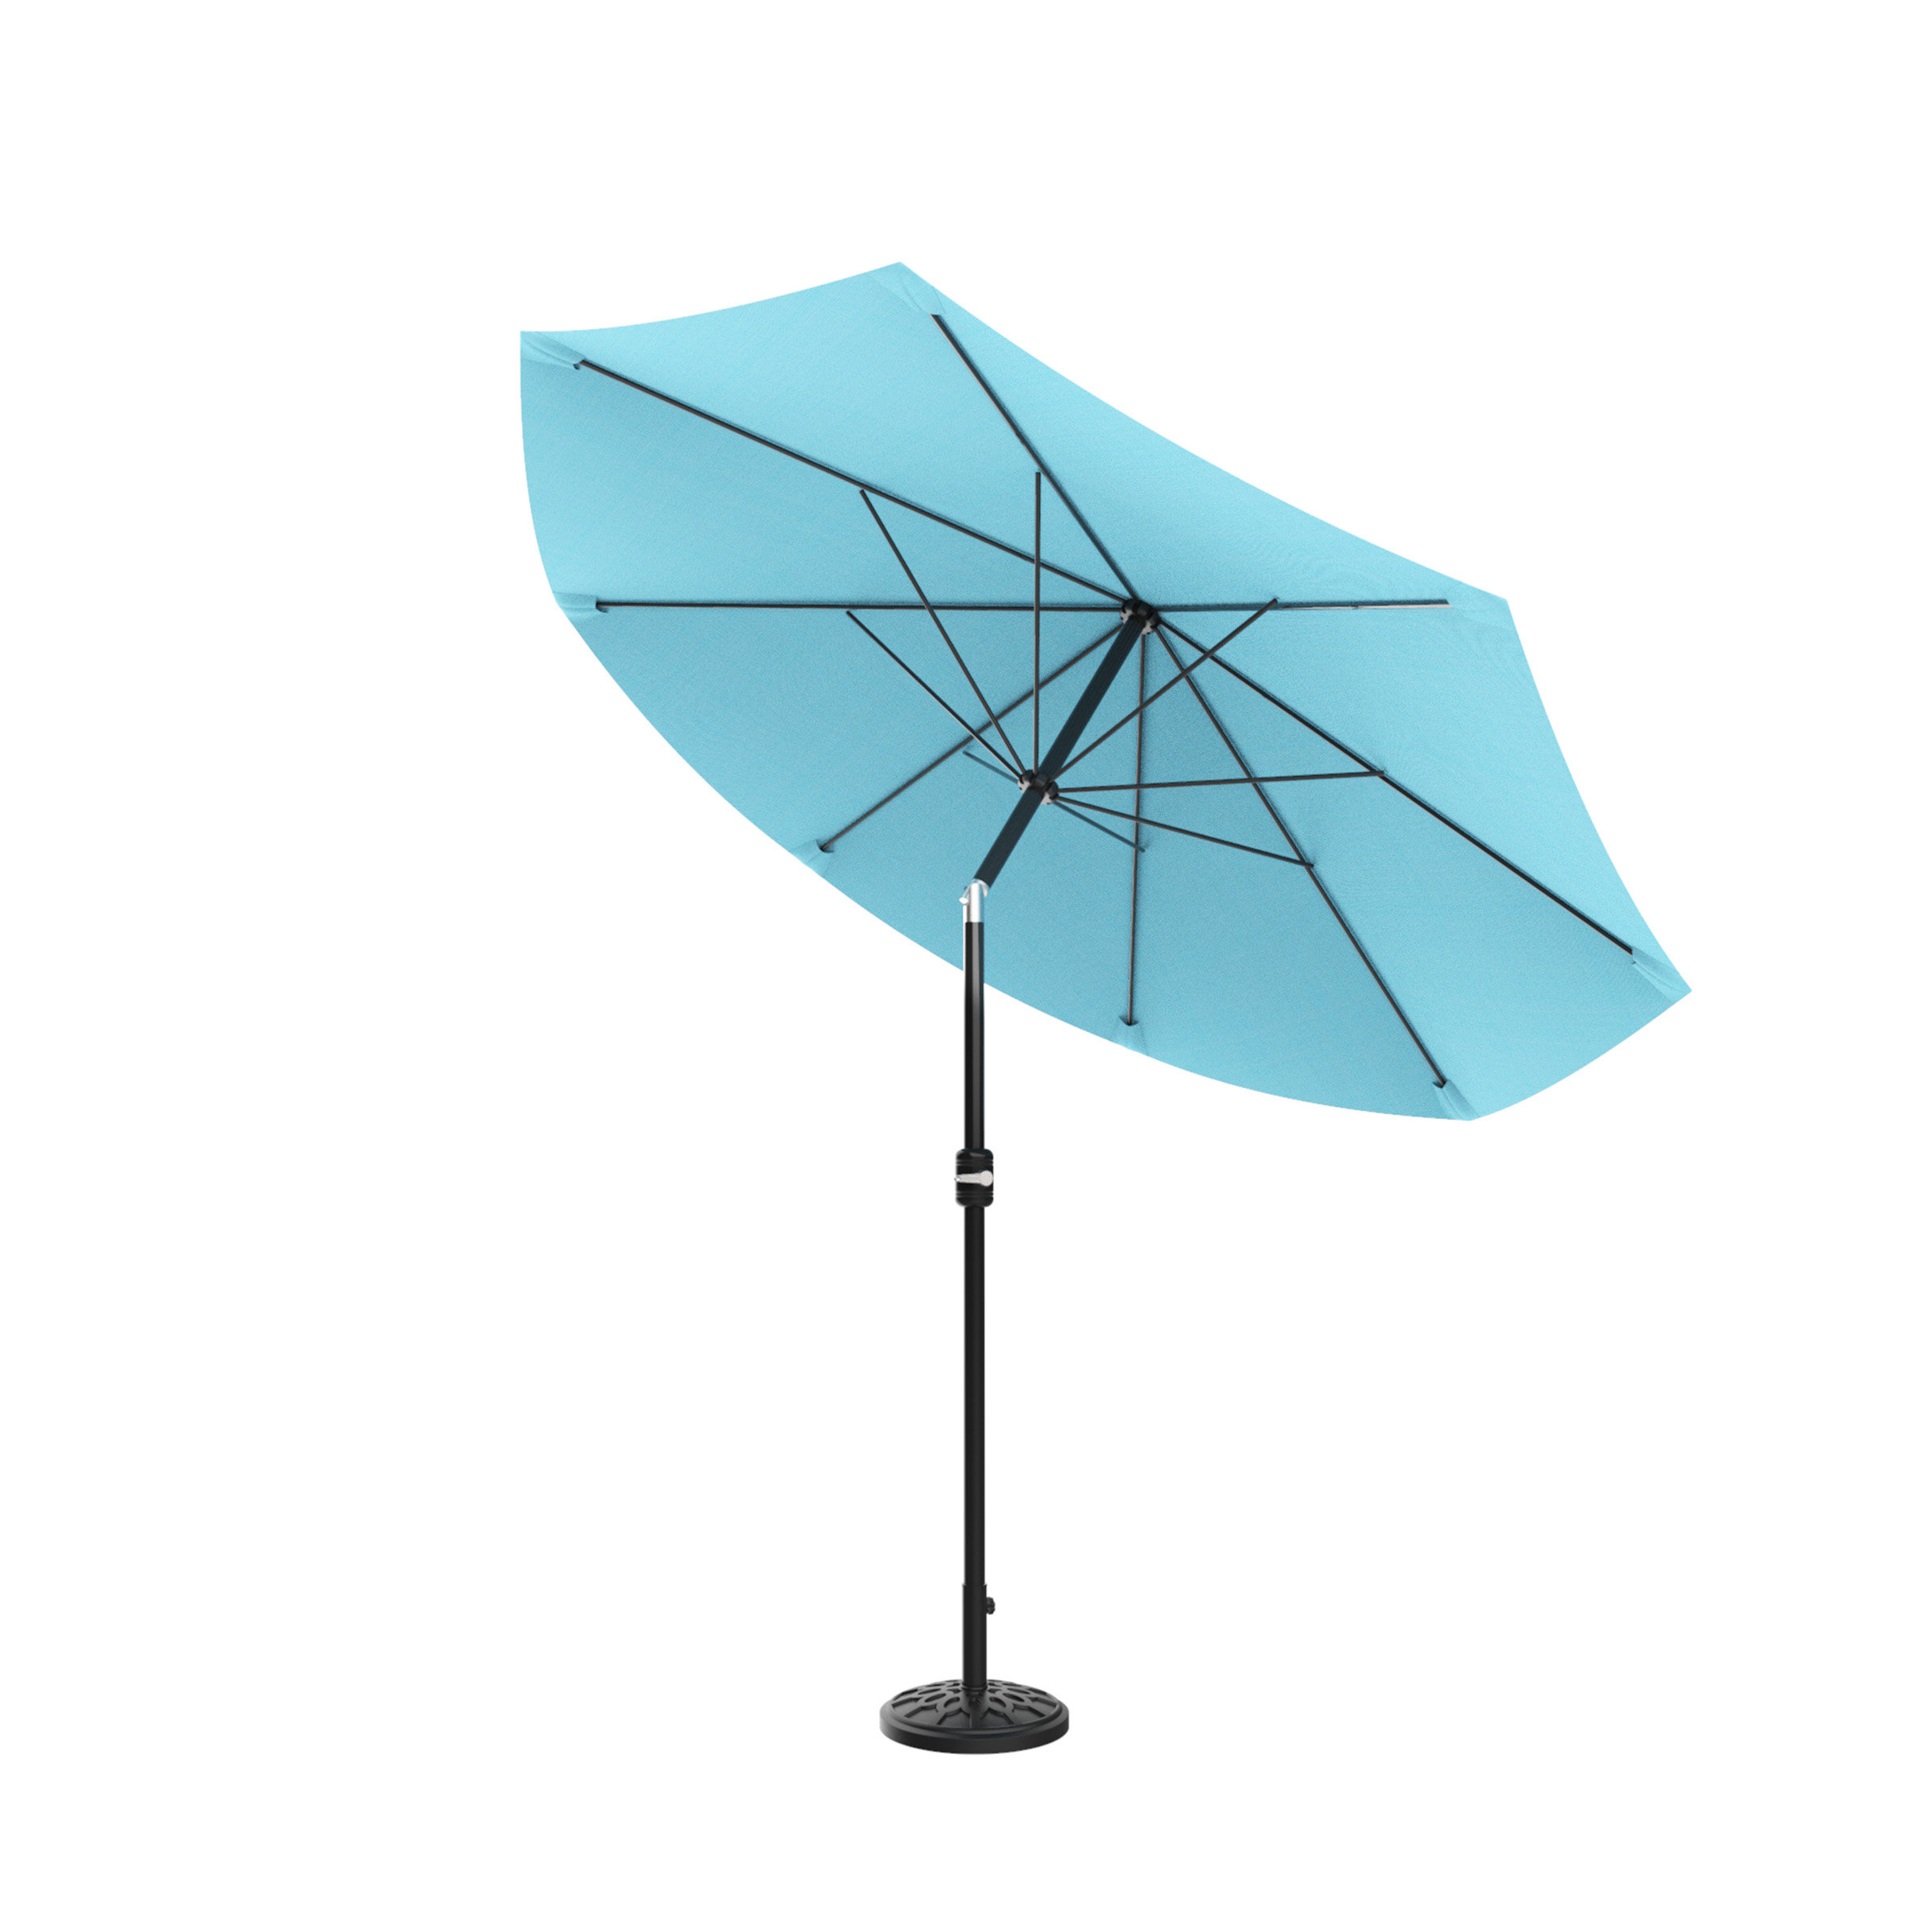 Most Popular Kelton 10' Market Umbrella Pertaining To Kearney Market Umbrellas (View 14 of 20)